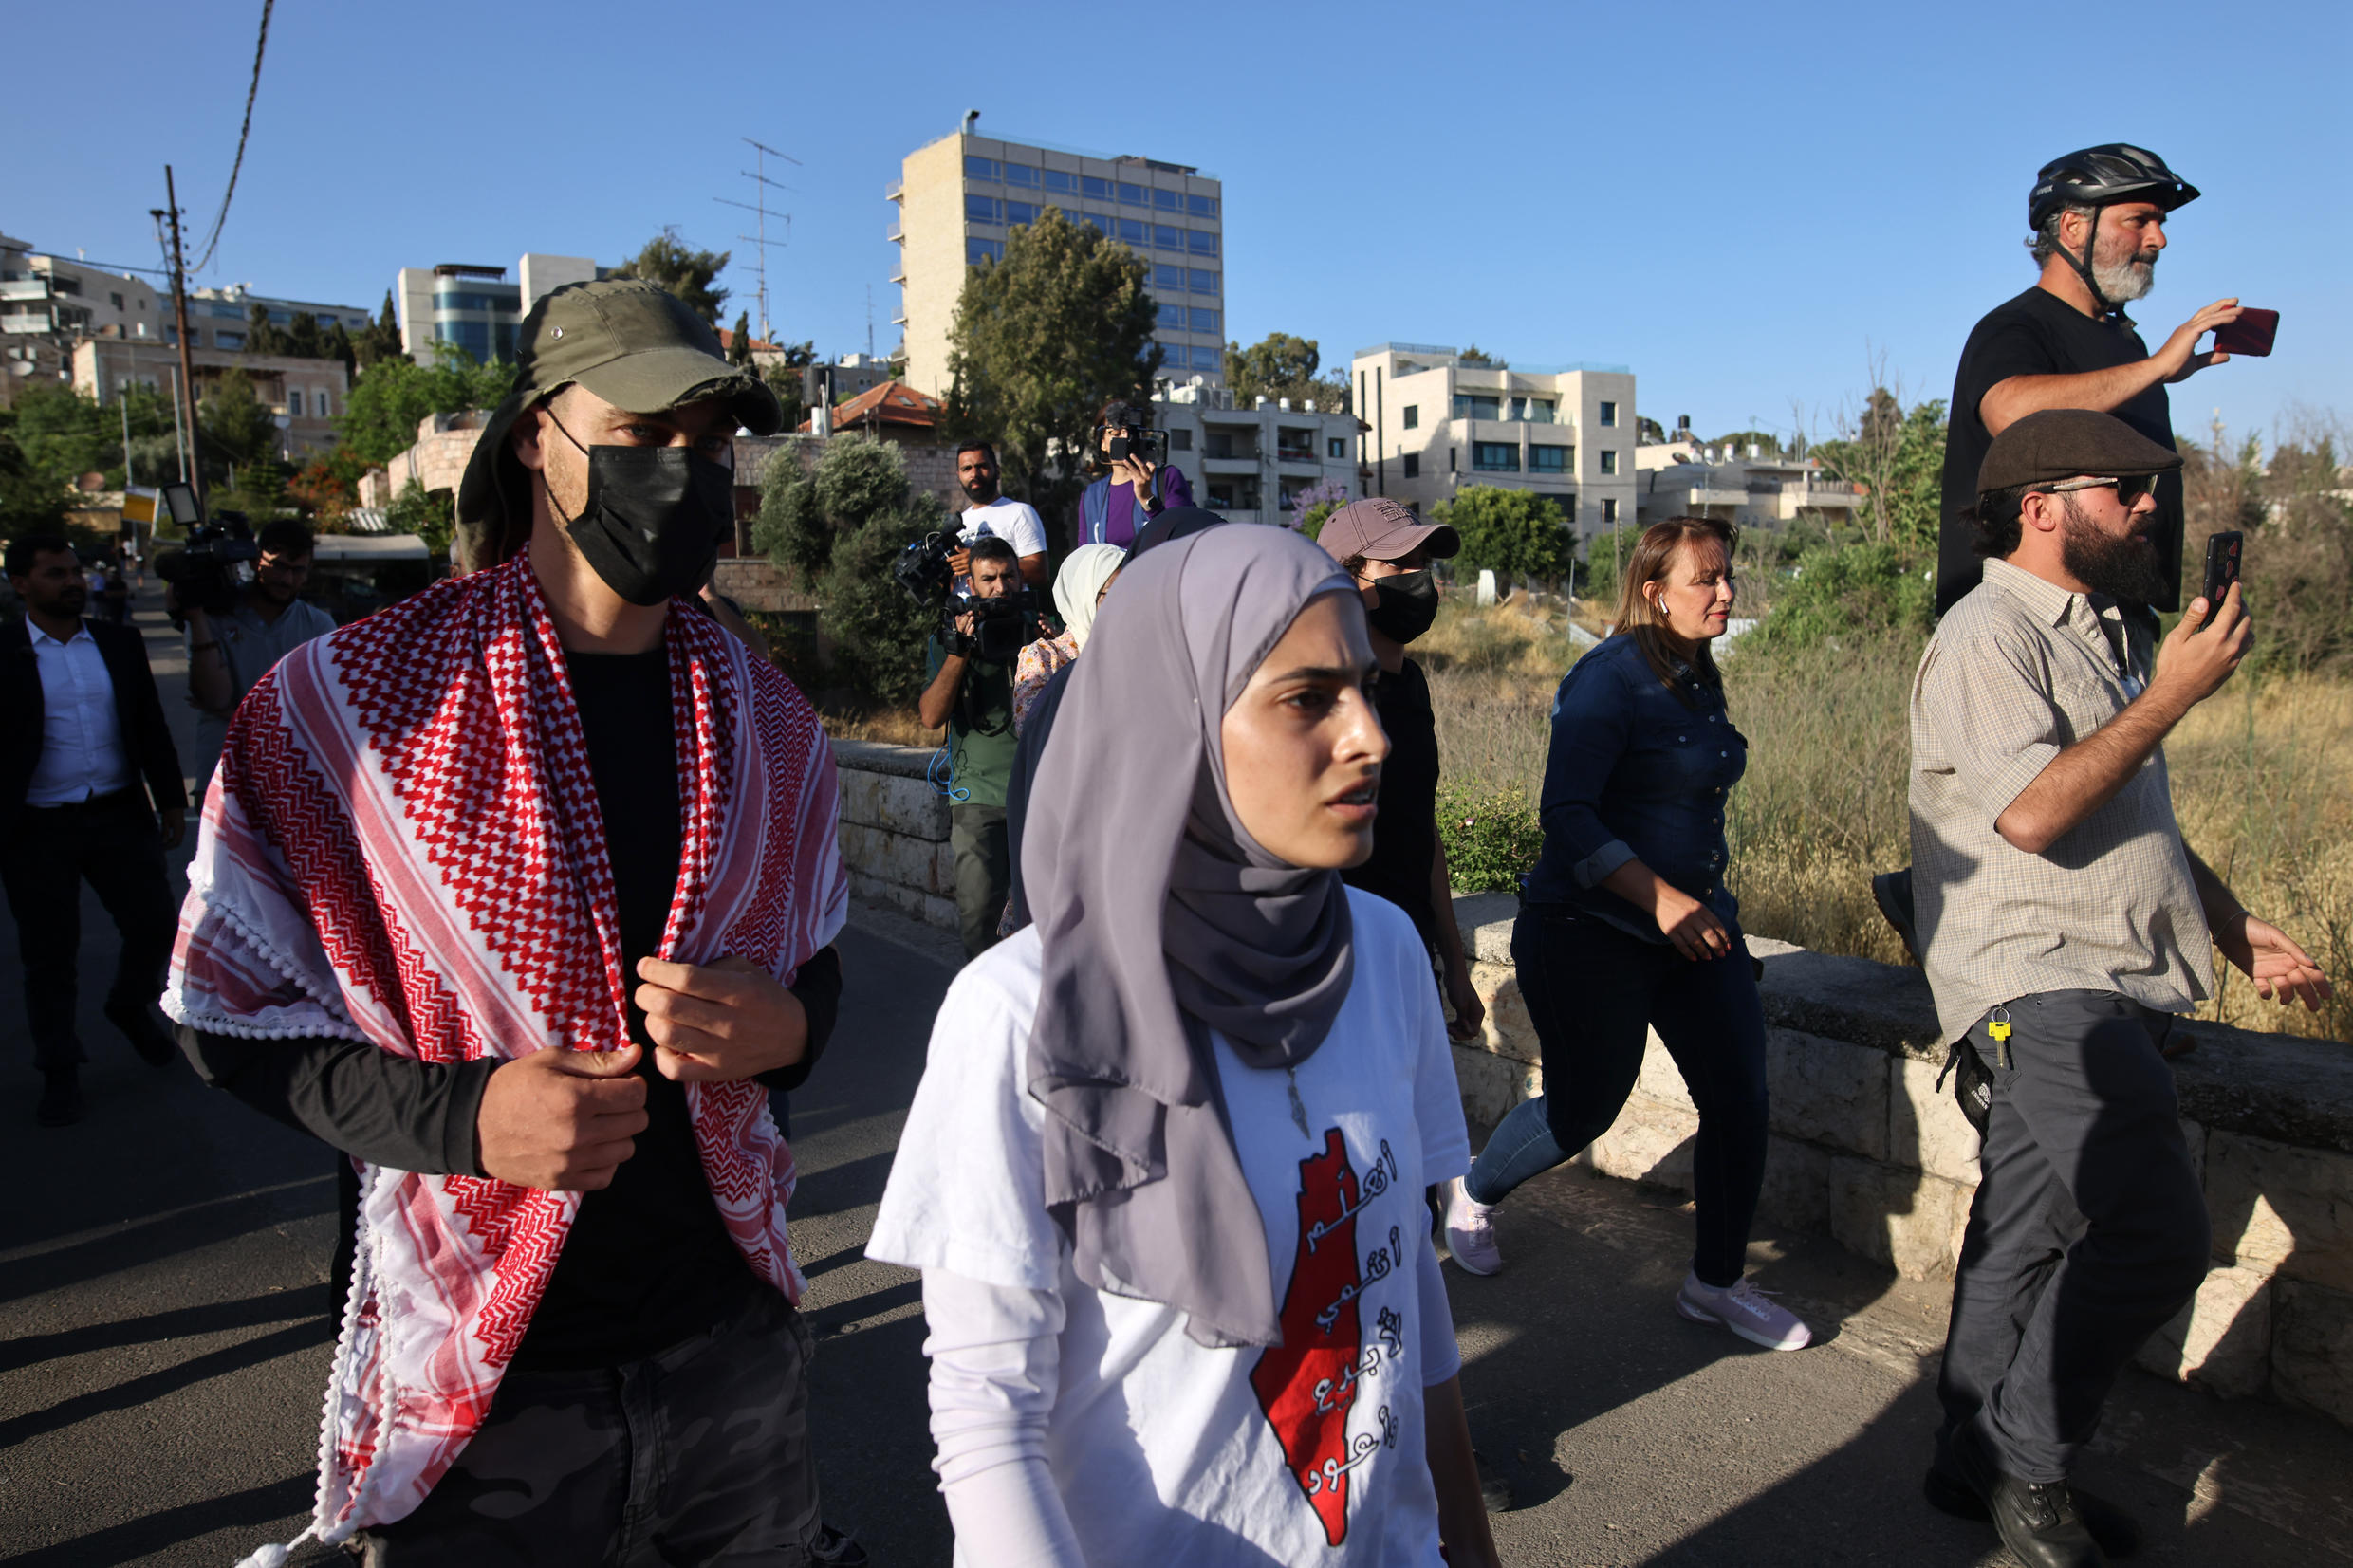 Palestinian activist Mona el-Kurd takes part in a rally to demand the reopening of the Israeli Police checkpoint at the entrance of the Sheikh Jarrah neighbourhood in east Jerusalem on May 29